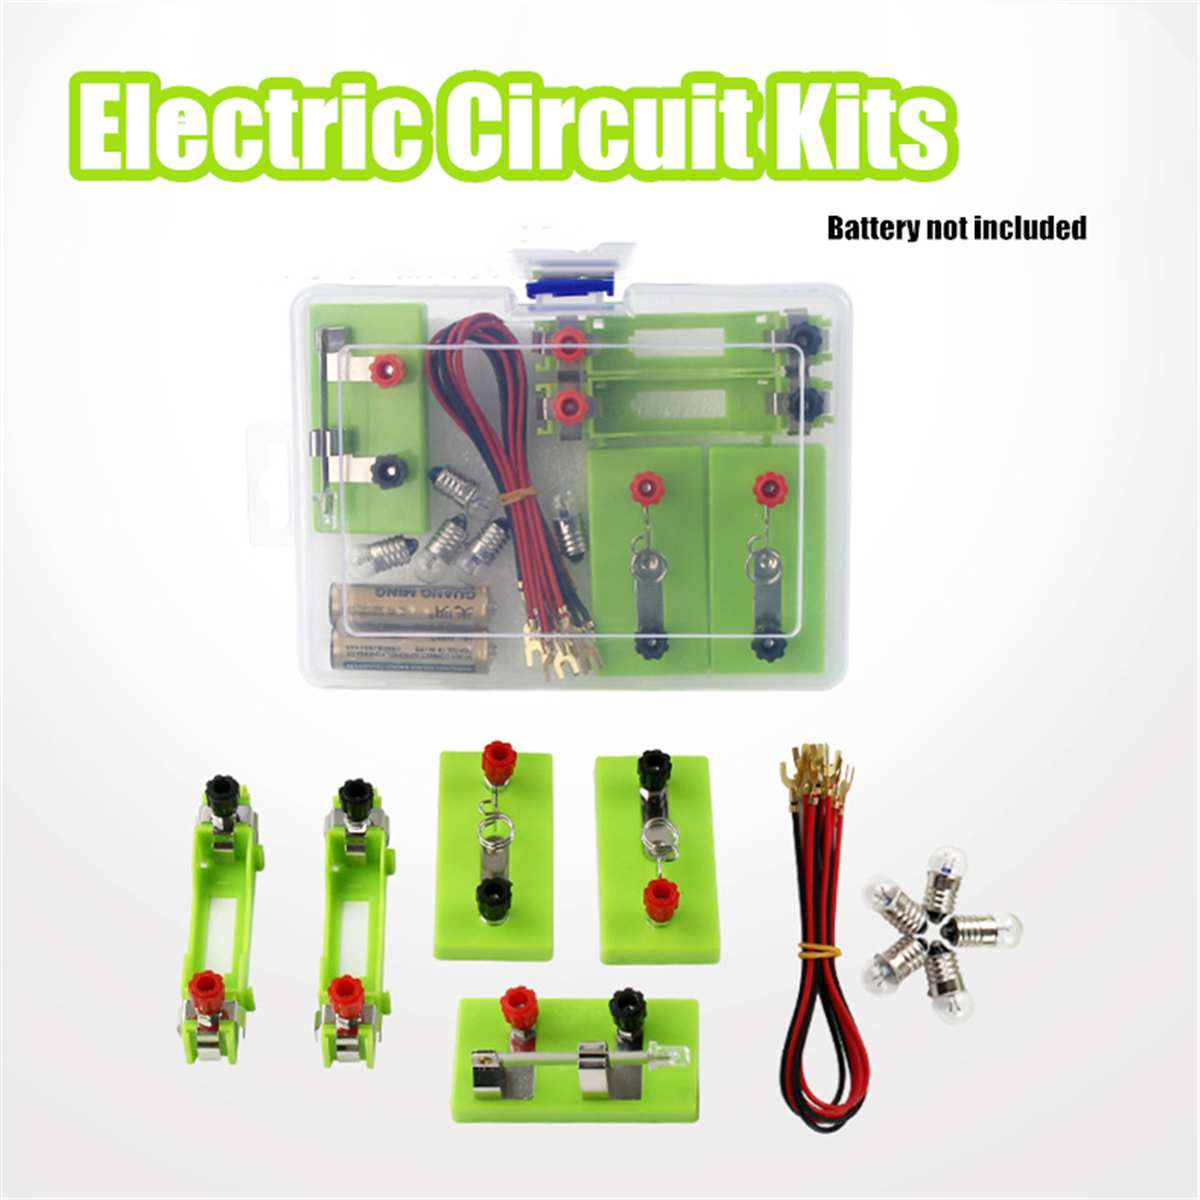 Buy Electrical Circuit Toys And Get Free Shipping On Kids